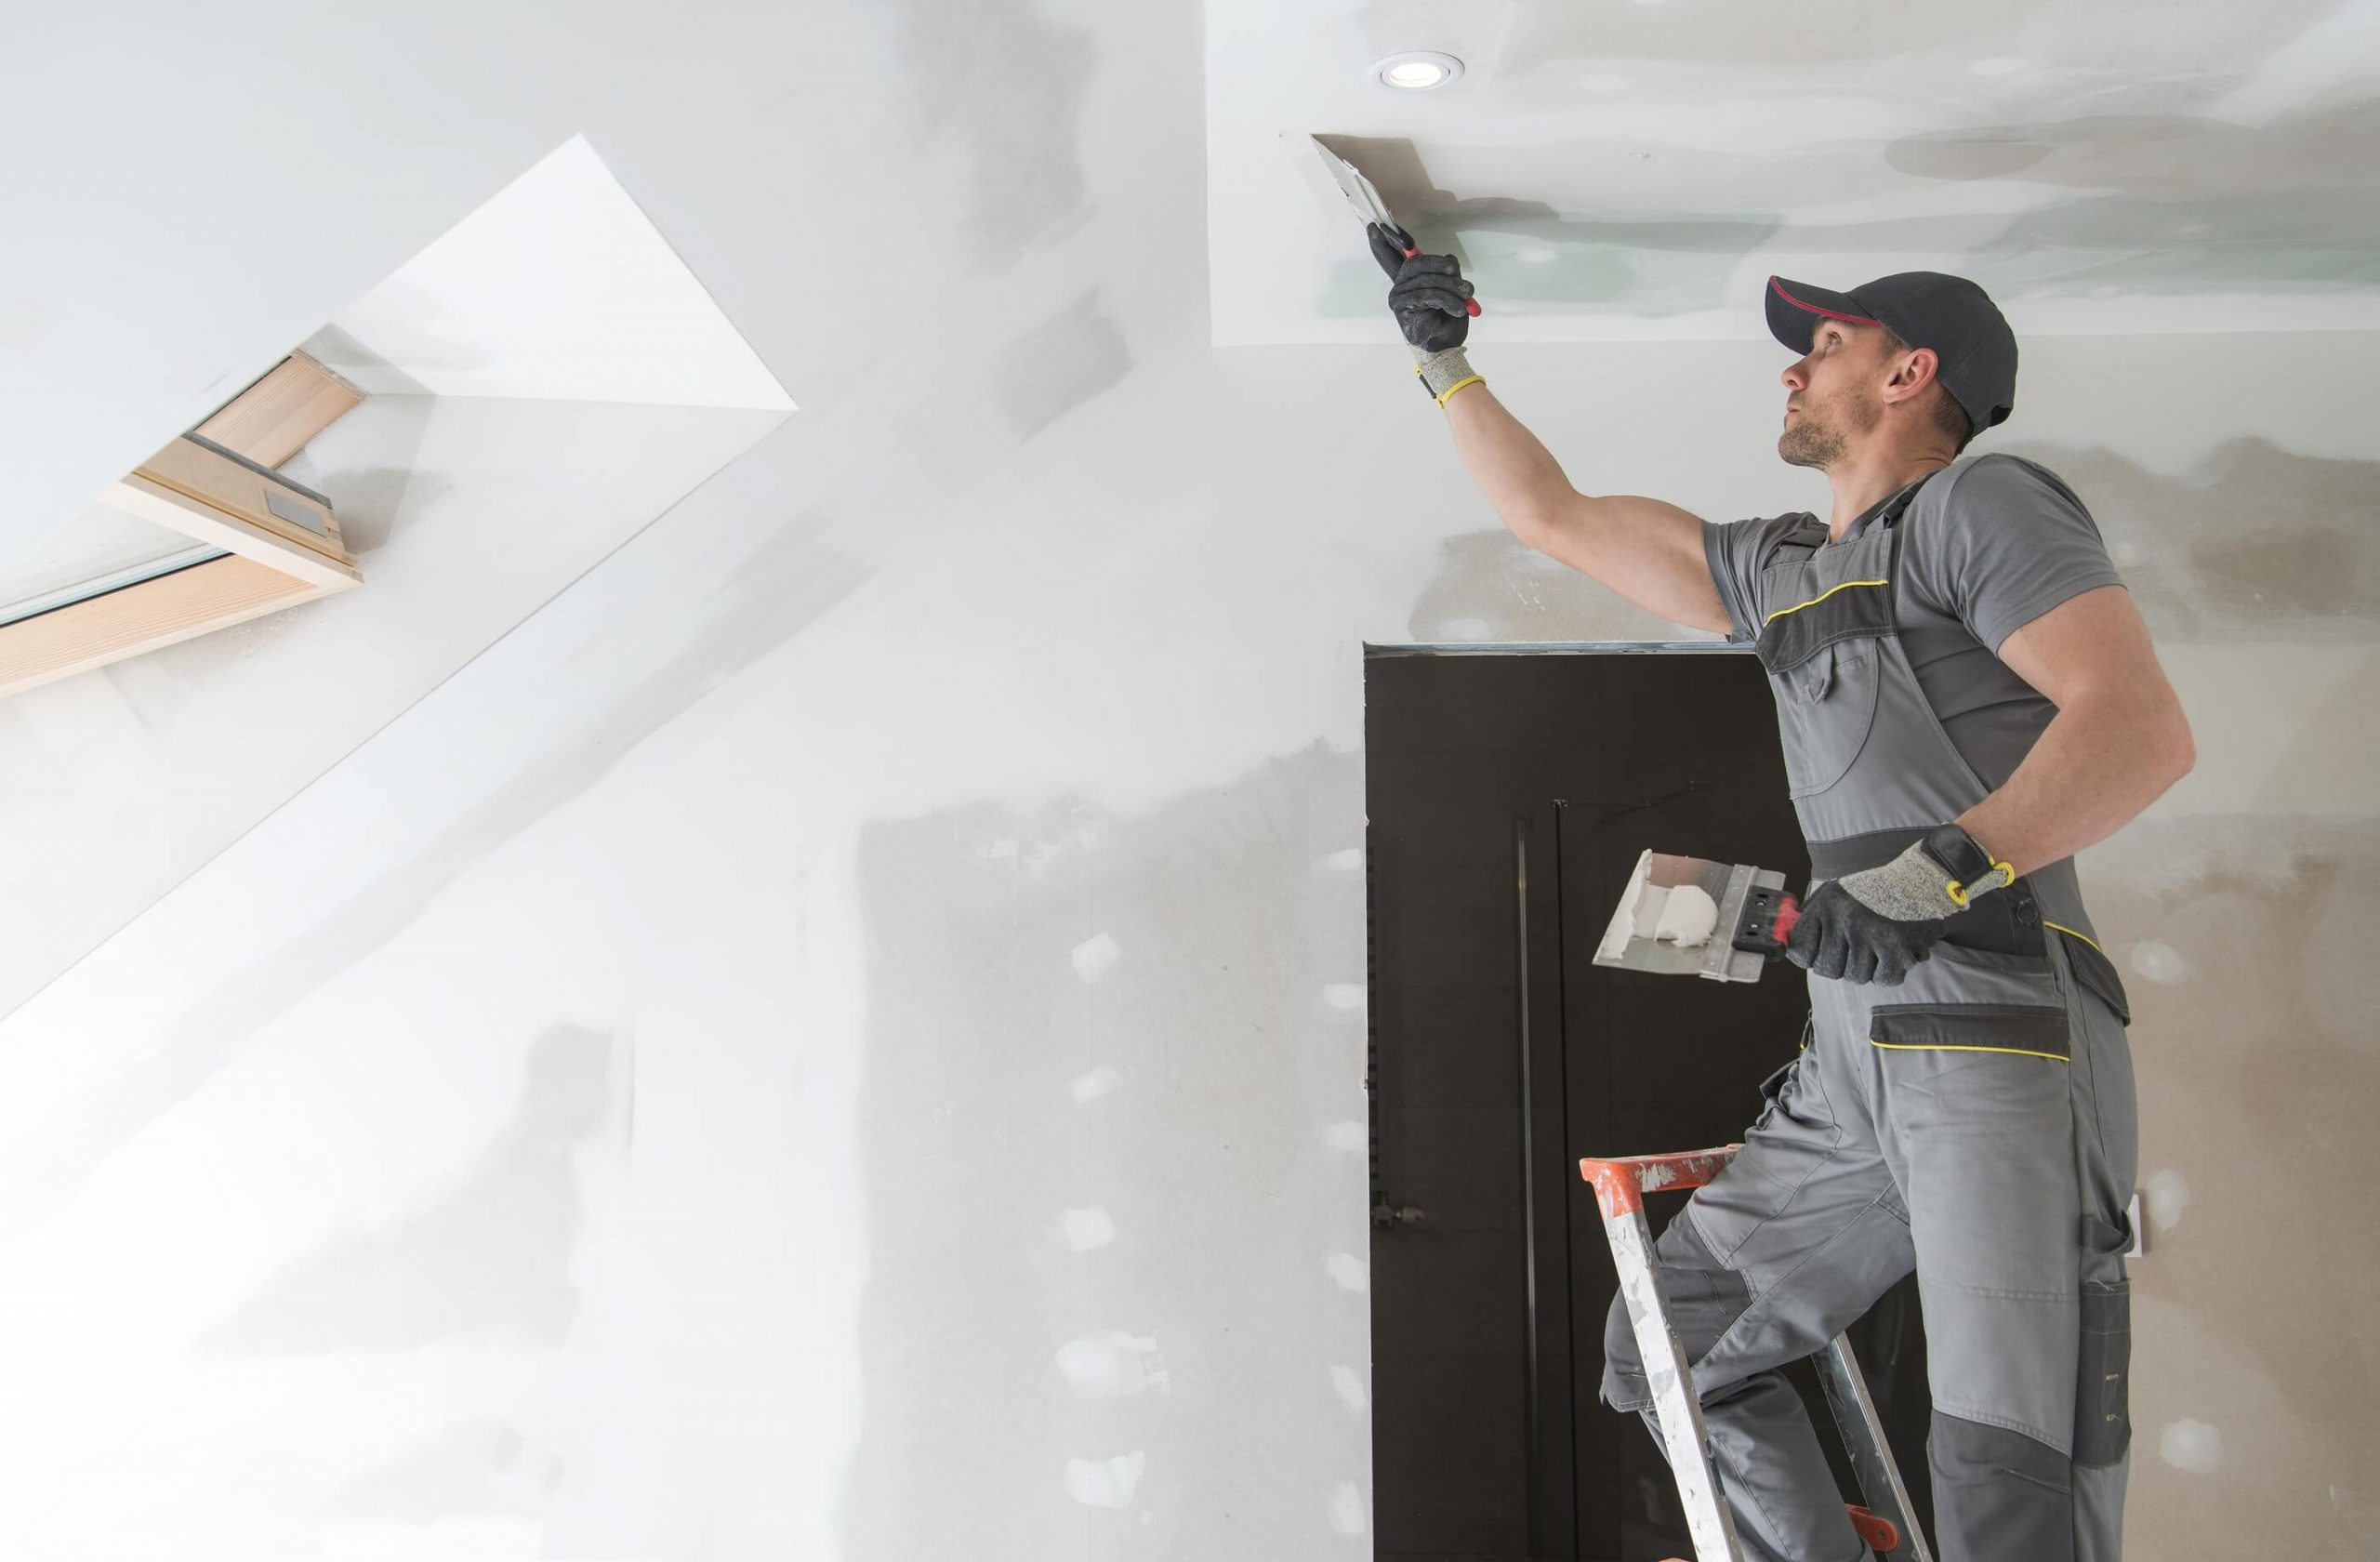 drywall contractor working in sarasota